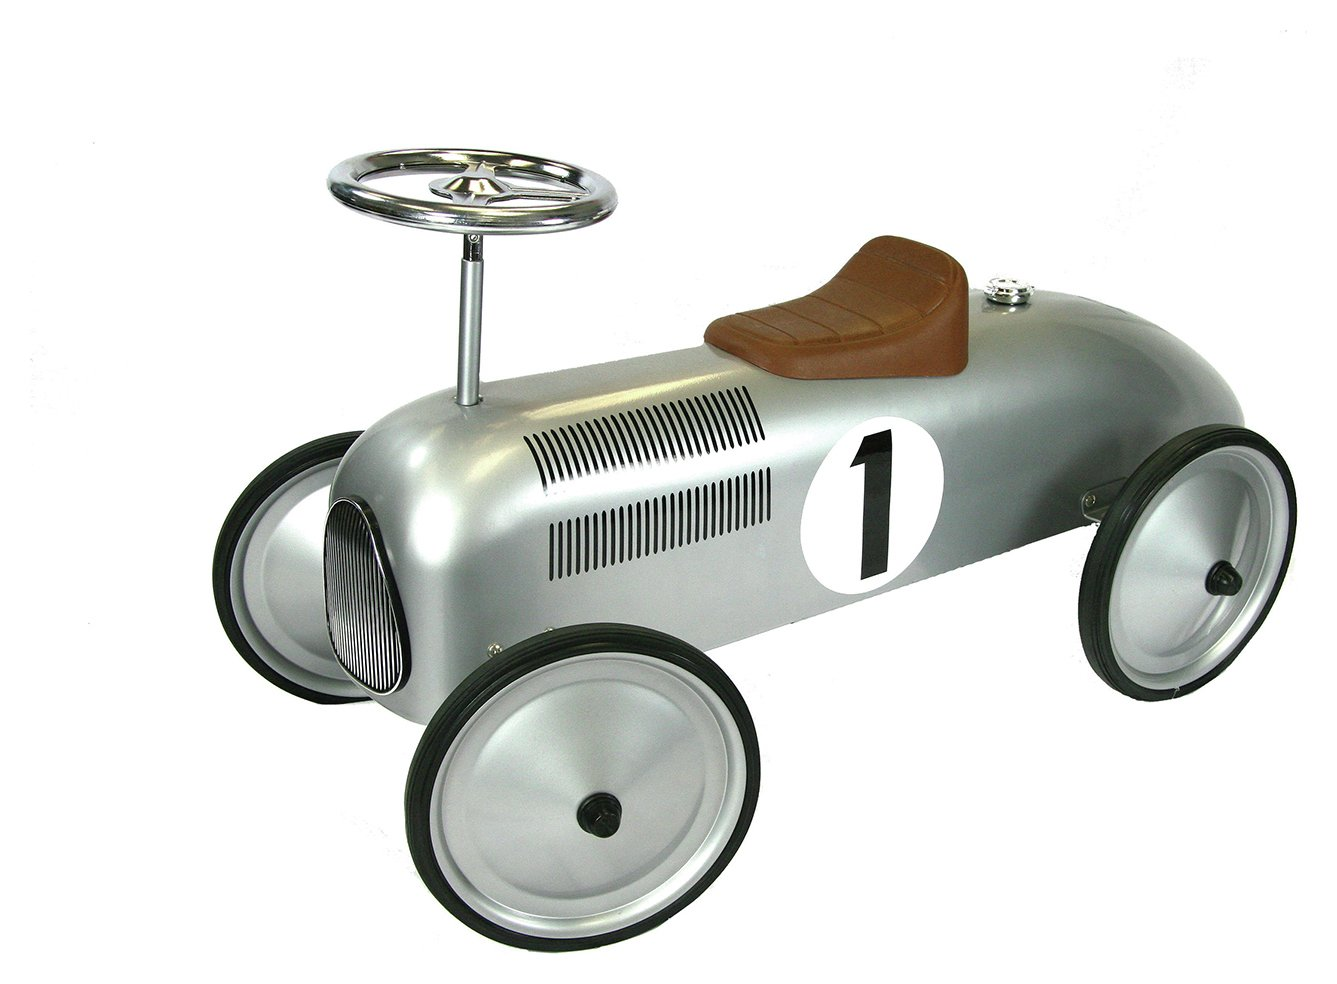 Image of Great Gizmos Classic Racer - Silver.